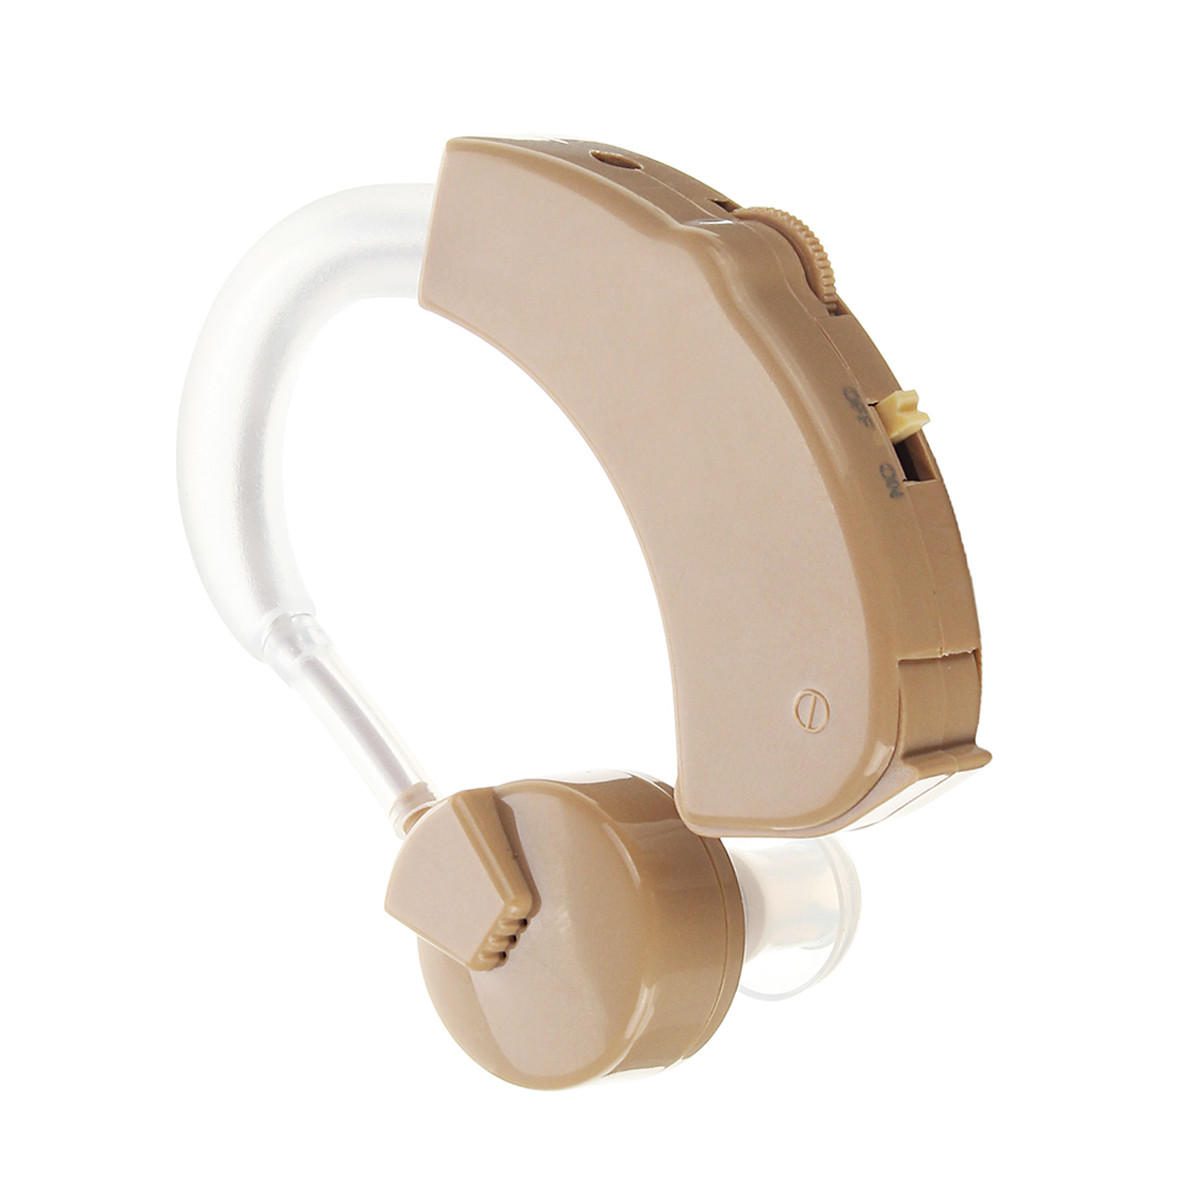 Mini Hearing Amplifier Hearing Aids Aid Behind-ear Sound Amplifier Adjustable Volume Tone